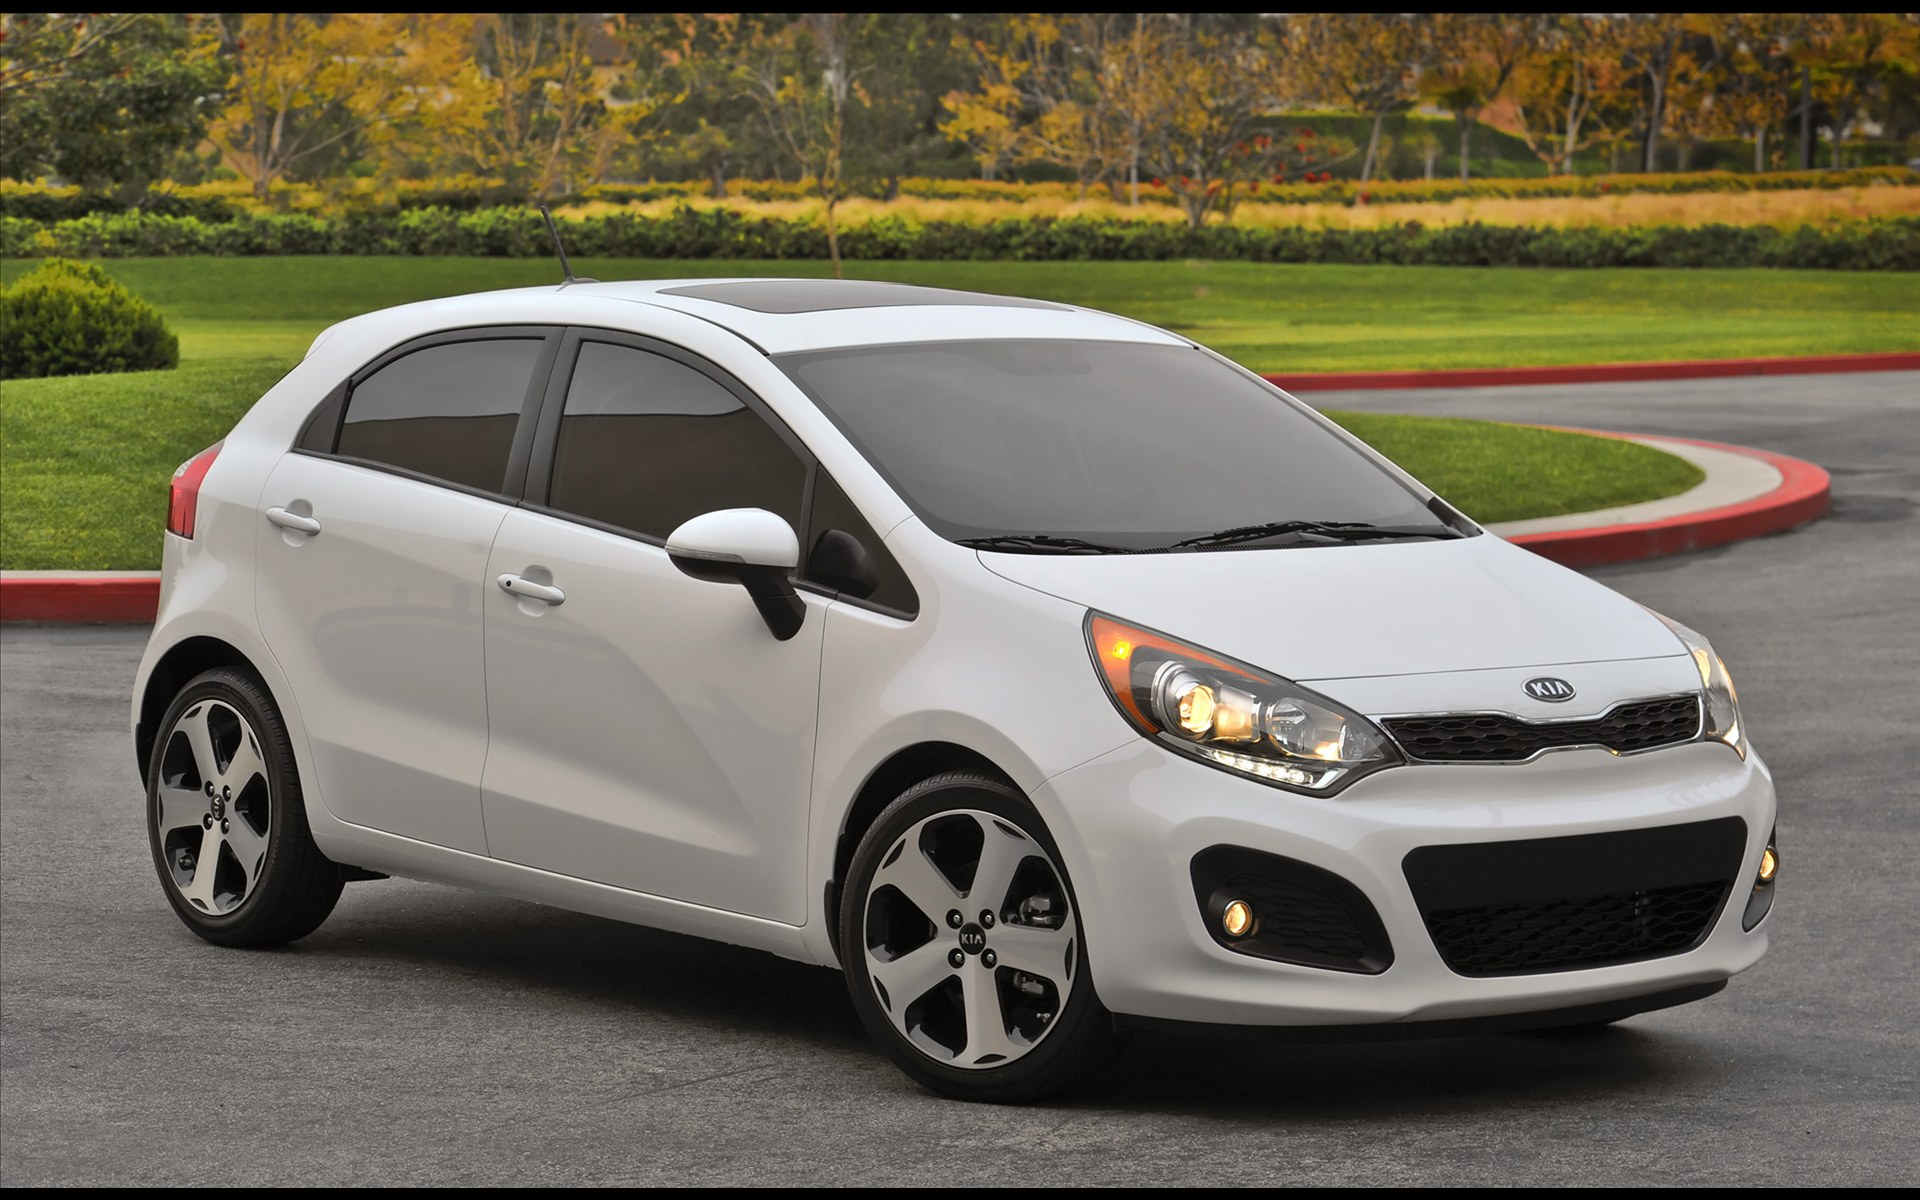 KIA RIO 5 2012 Wallpaper Sense The Car 1920x1200